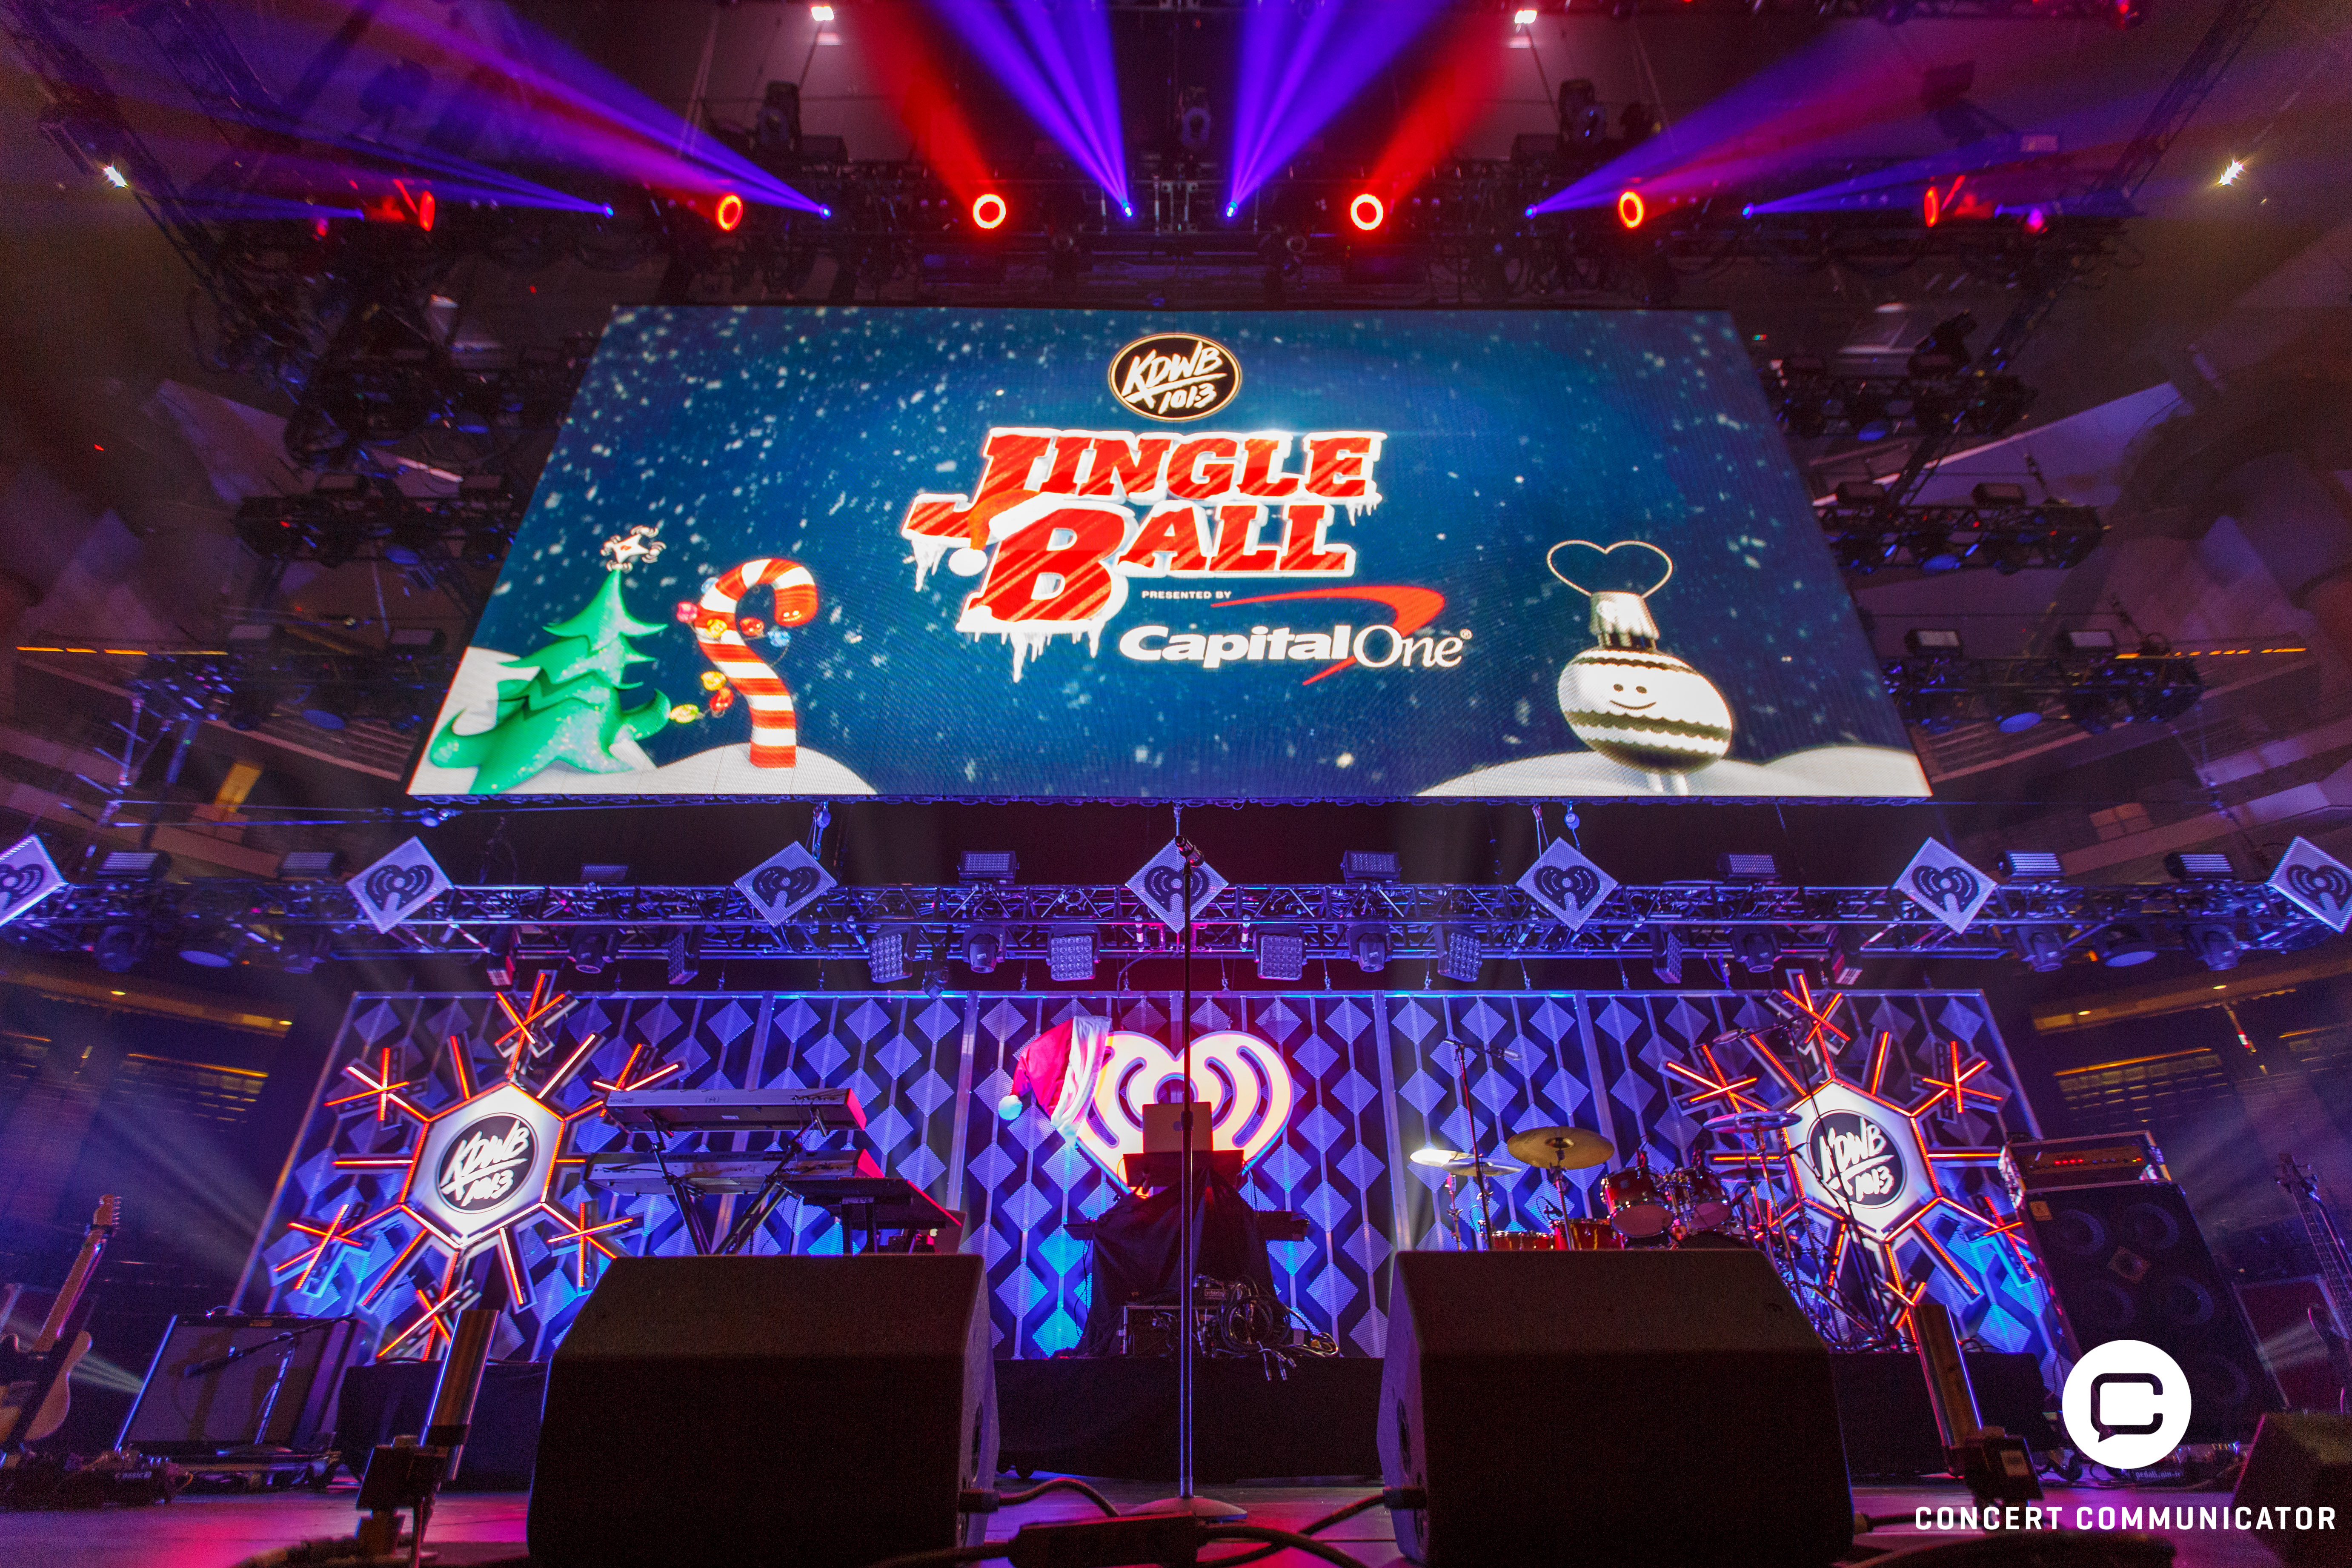 KDWB's Jingle Ball 2016